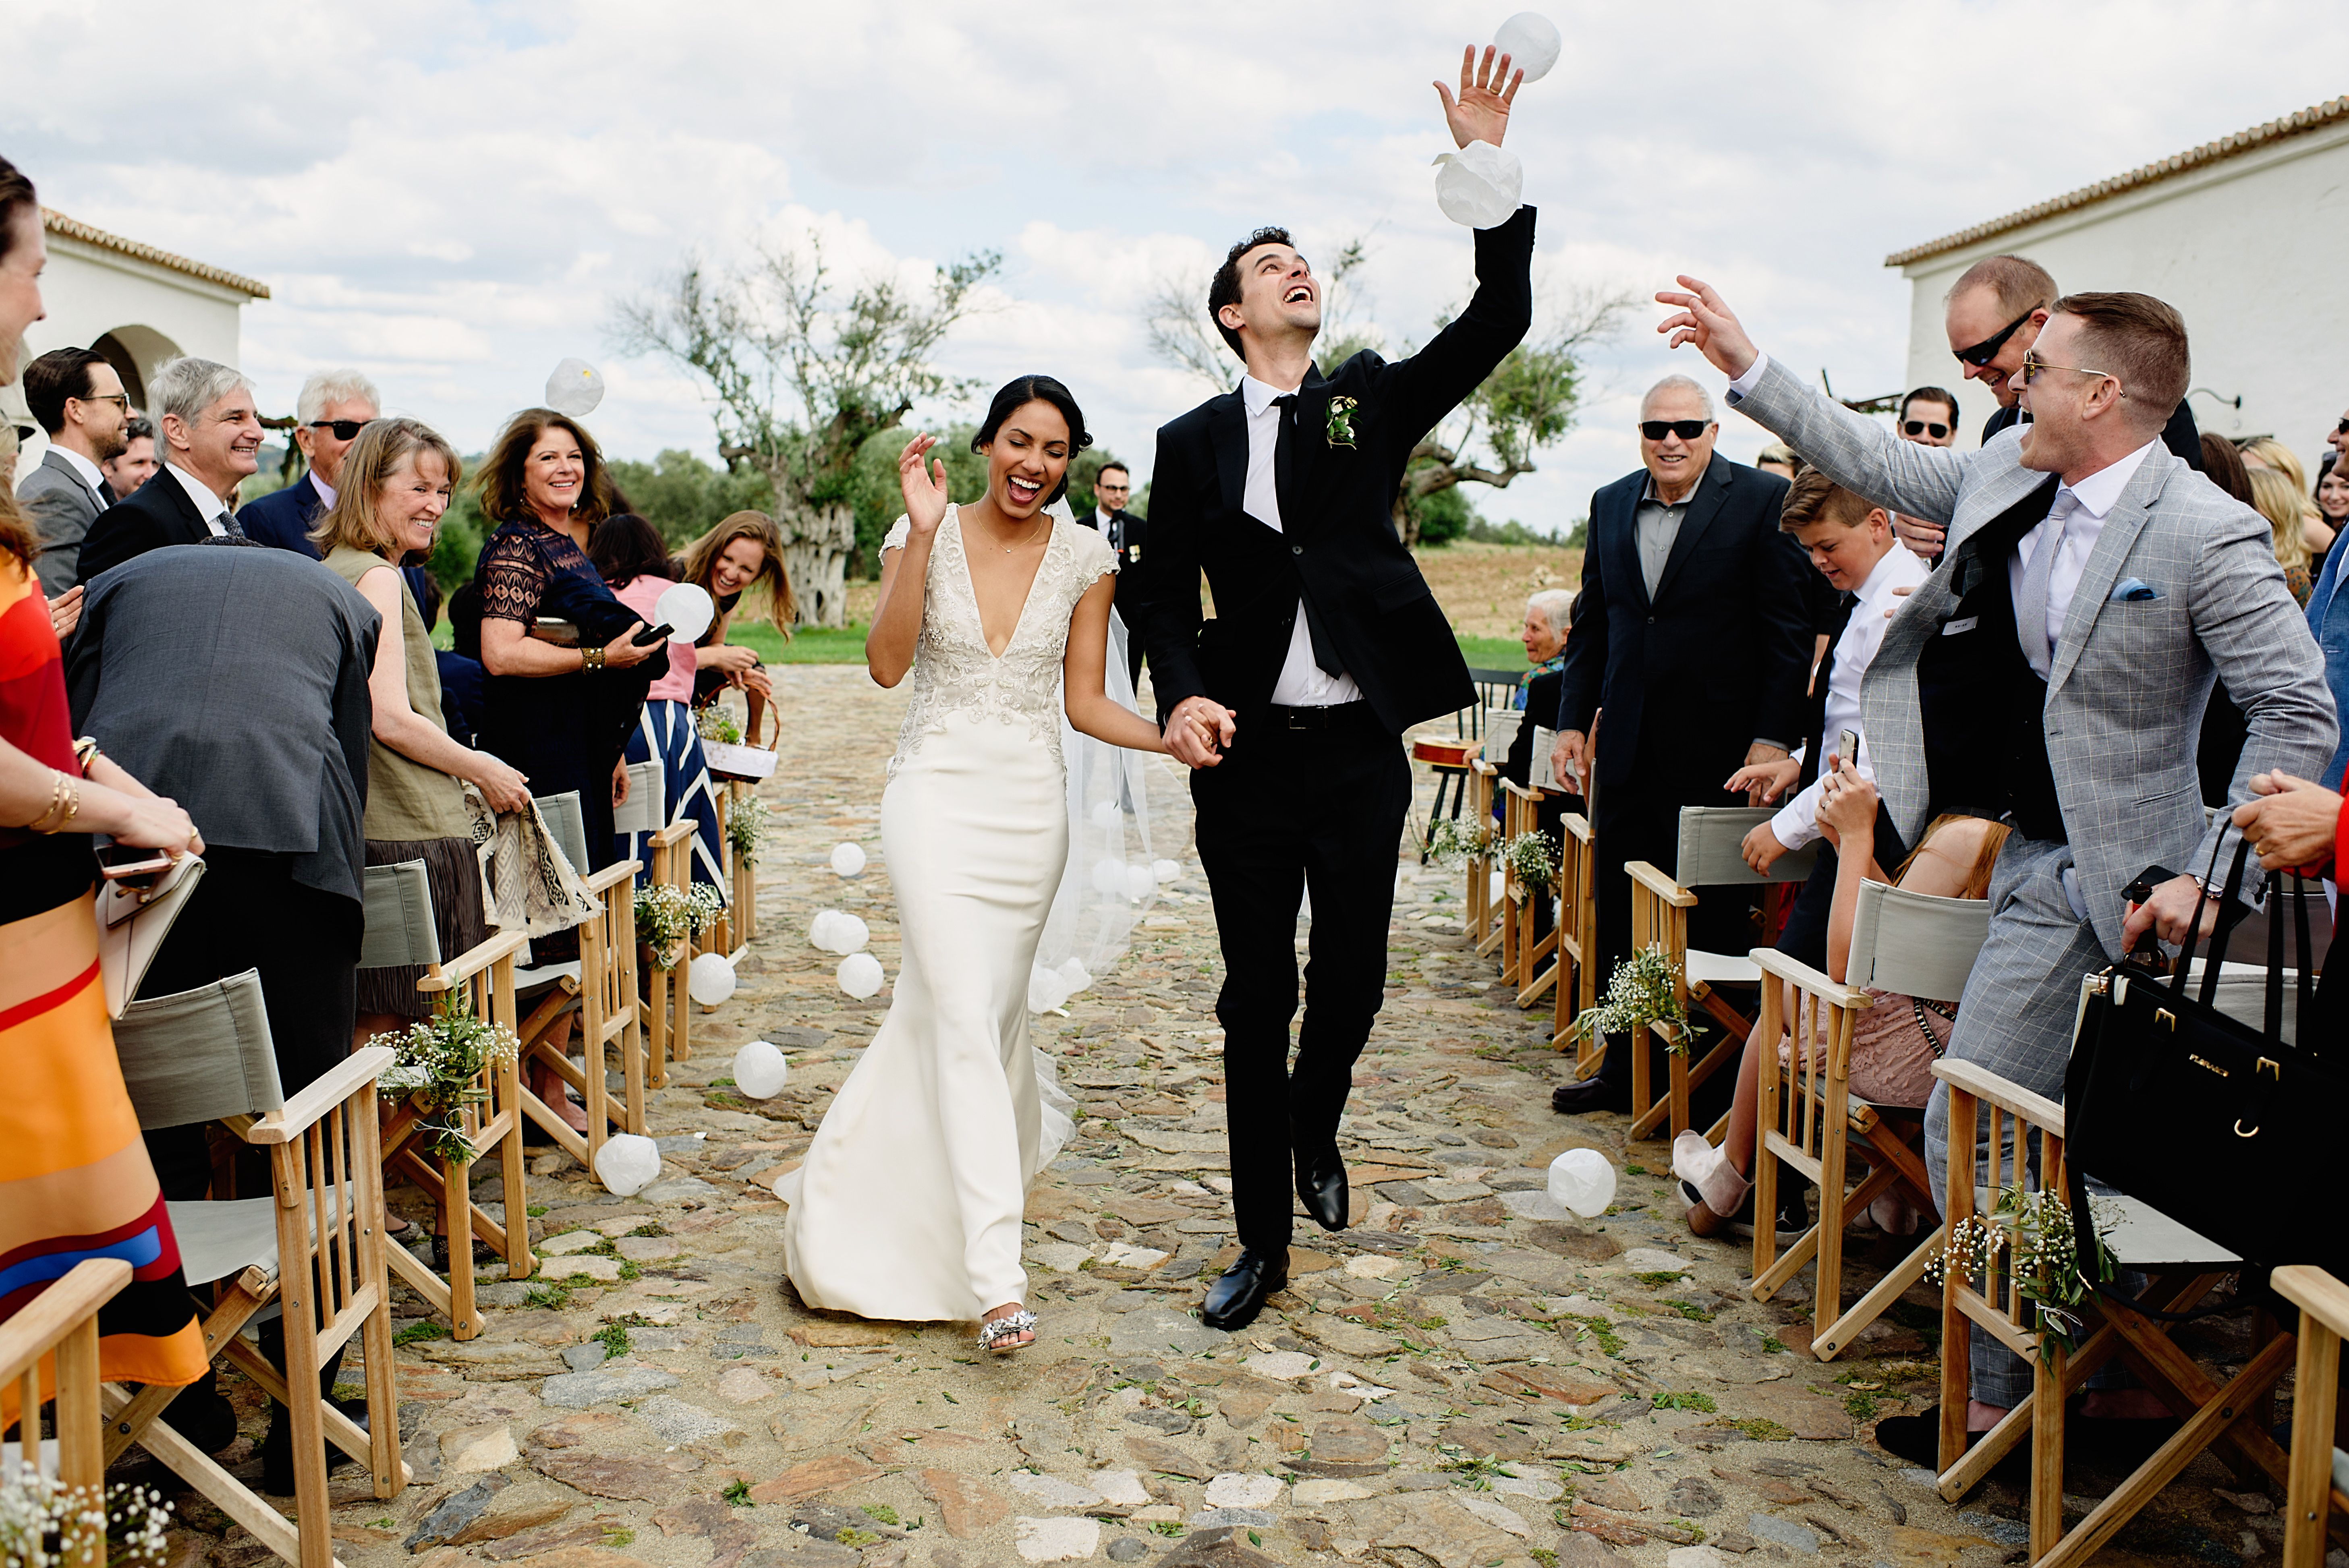 Wedding Costs: Who Pays for What?